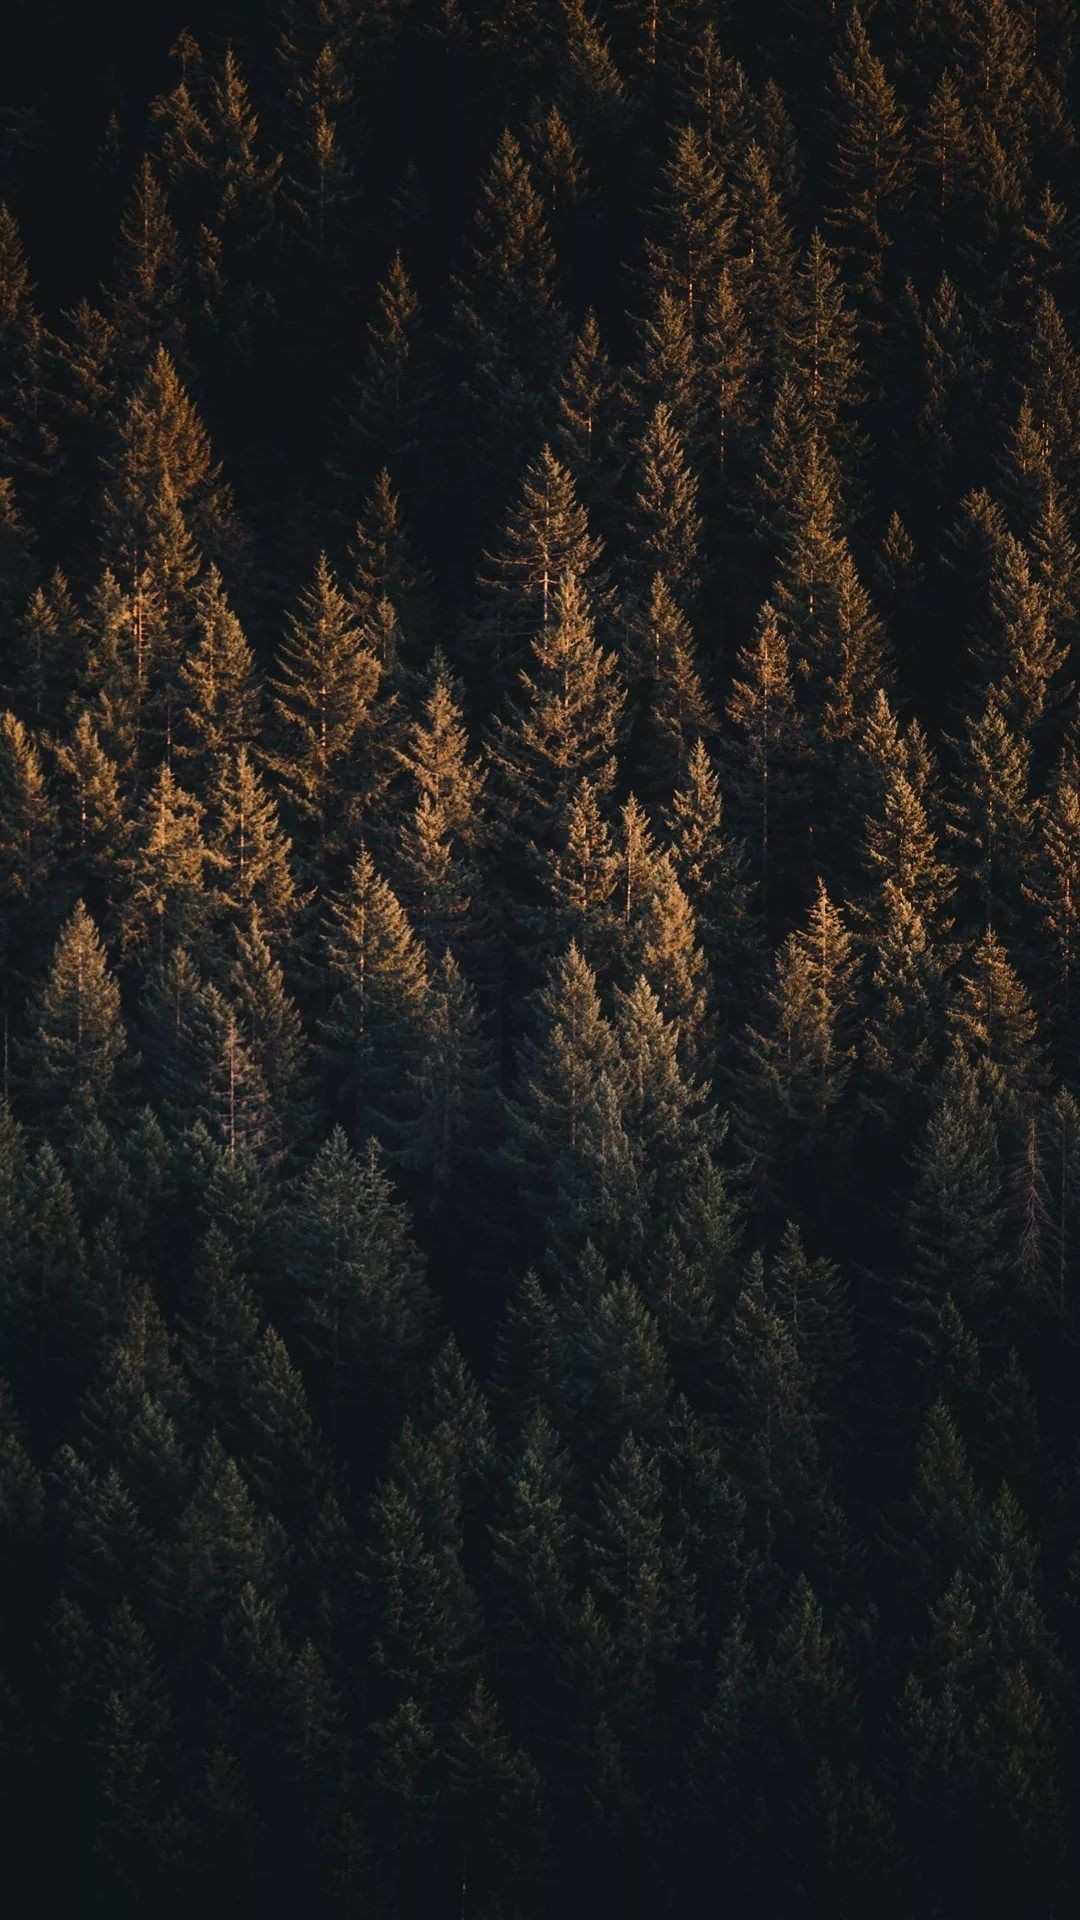 Forest wallpaper for iPhone